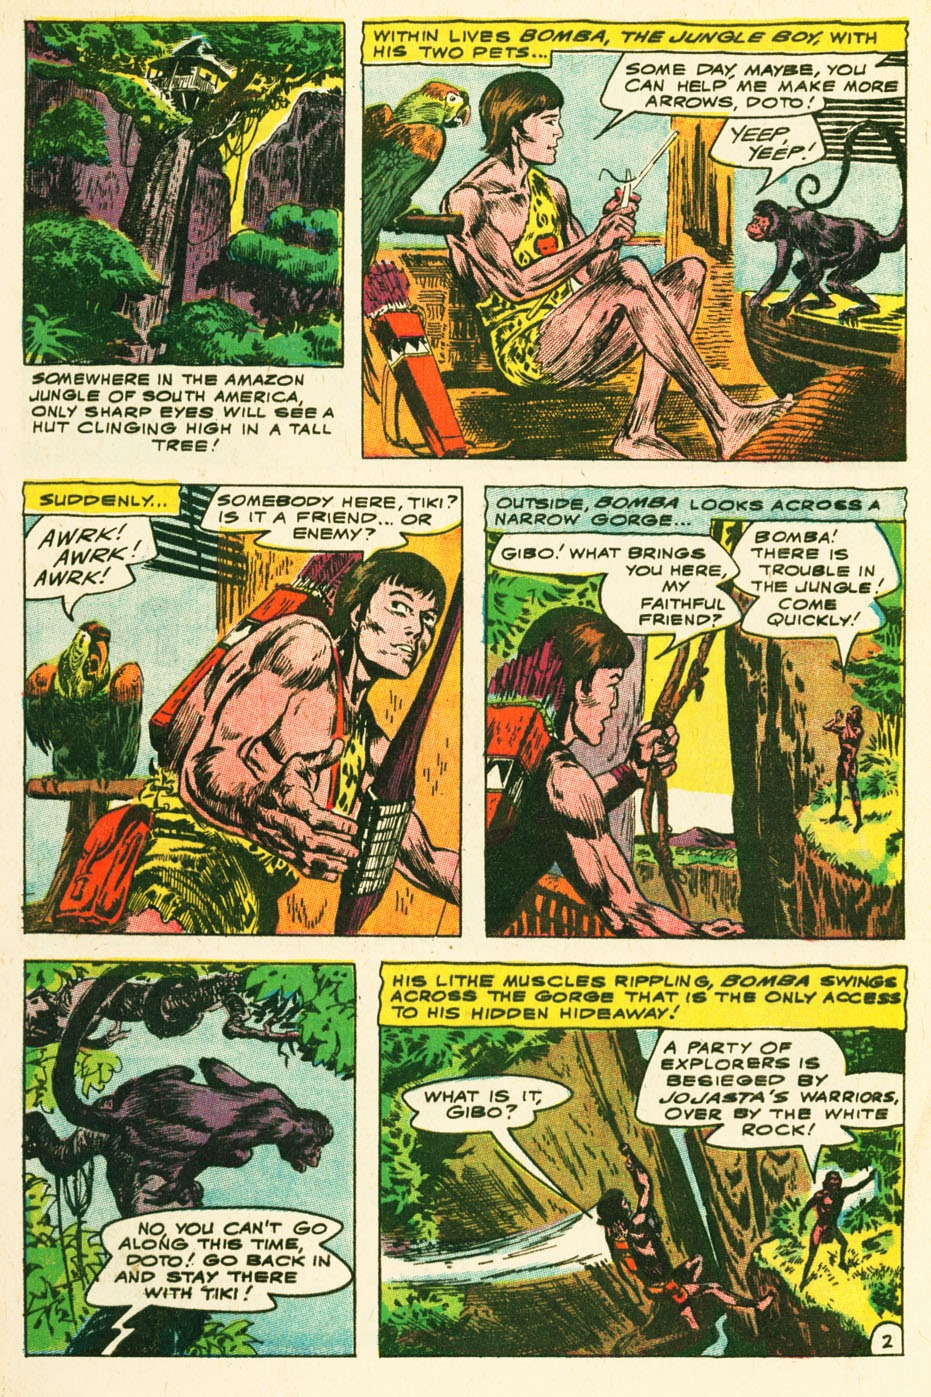 Bomba, The Jungle Boy issue 1 - Page 3